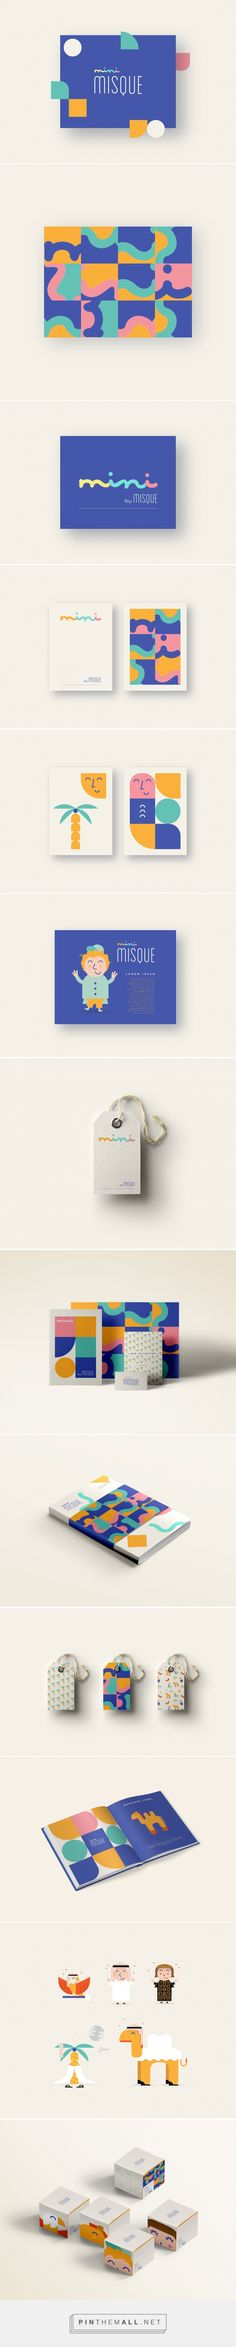 Mini Misque Branding on Behance | Fivestar Branding – Design and Branding…